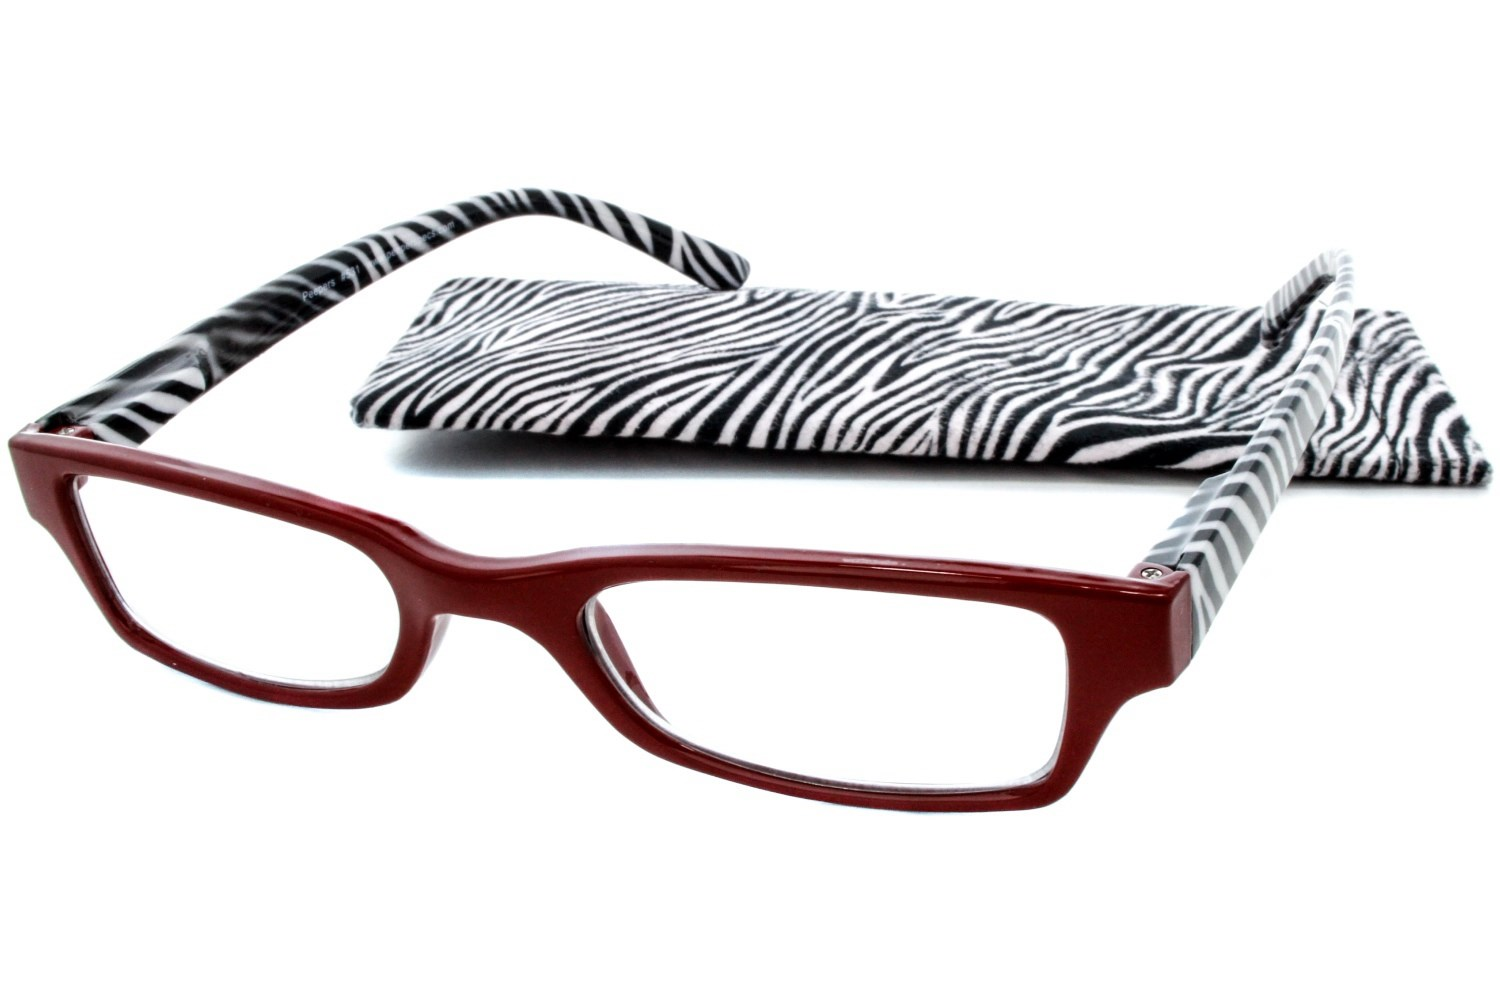 peepers pride rock reading glasses dealtrend